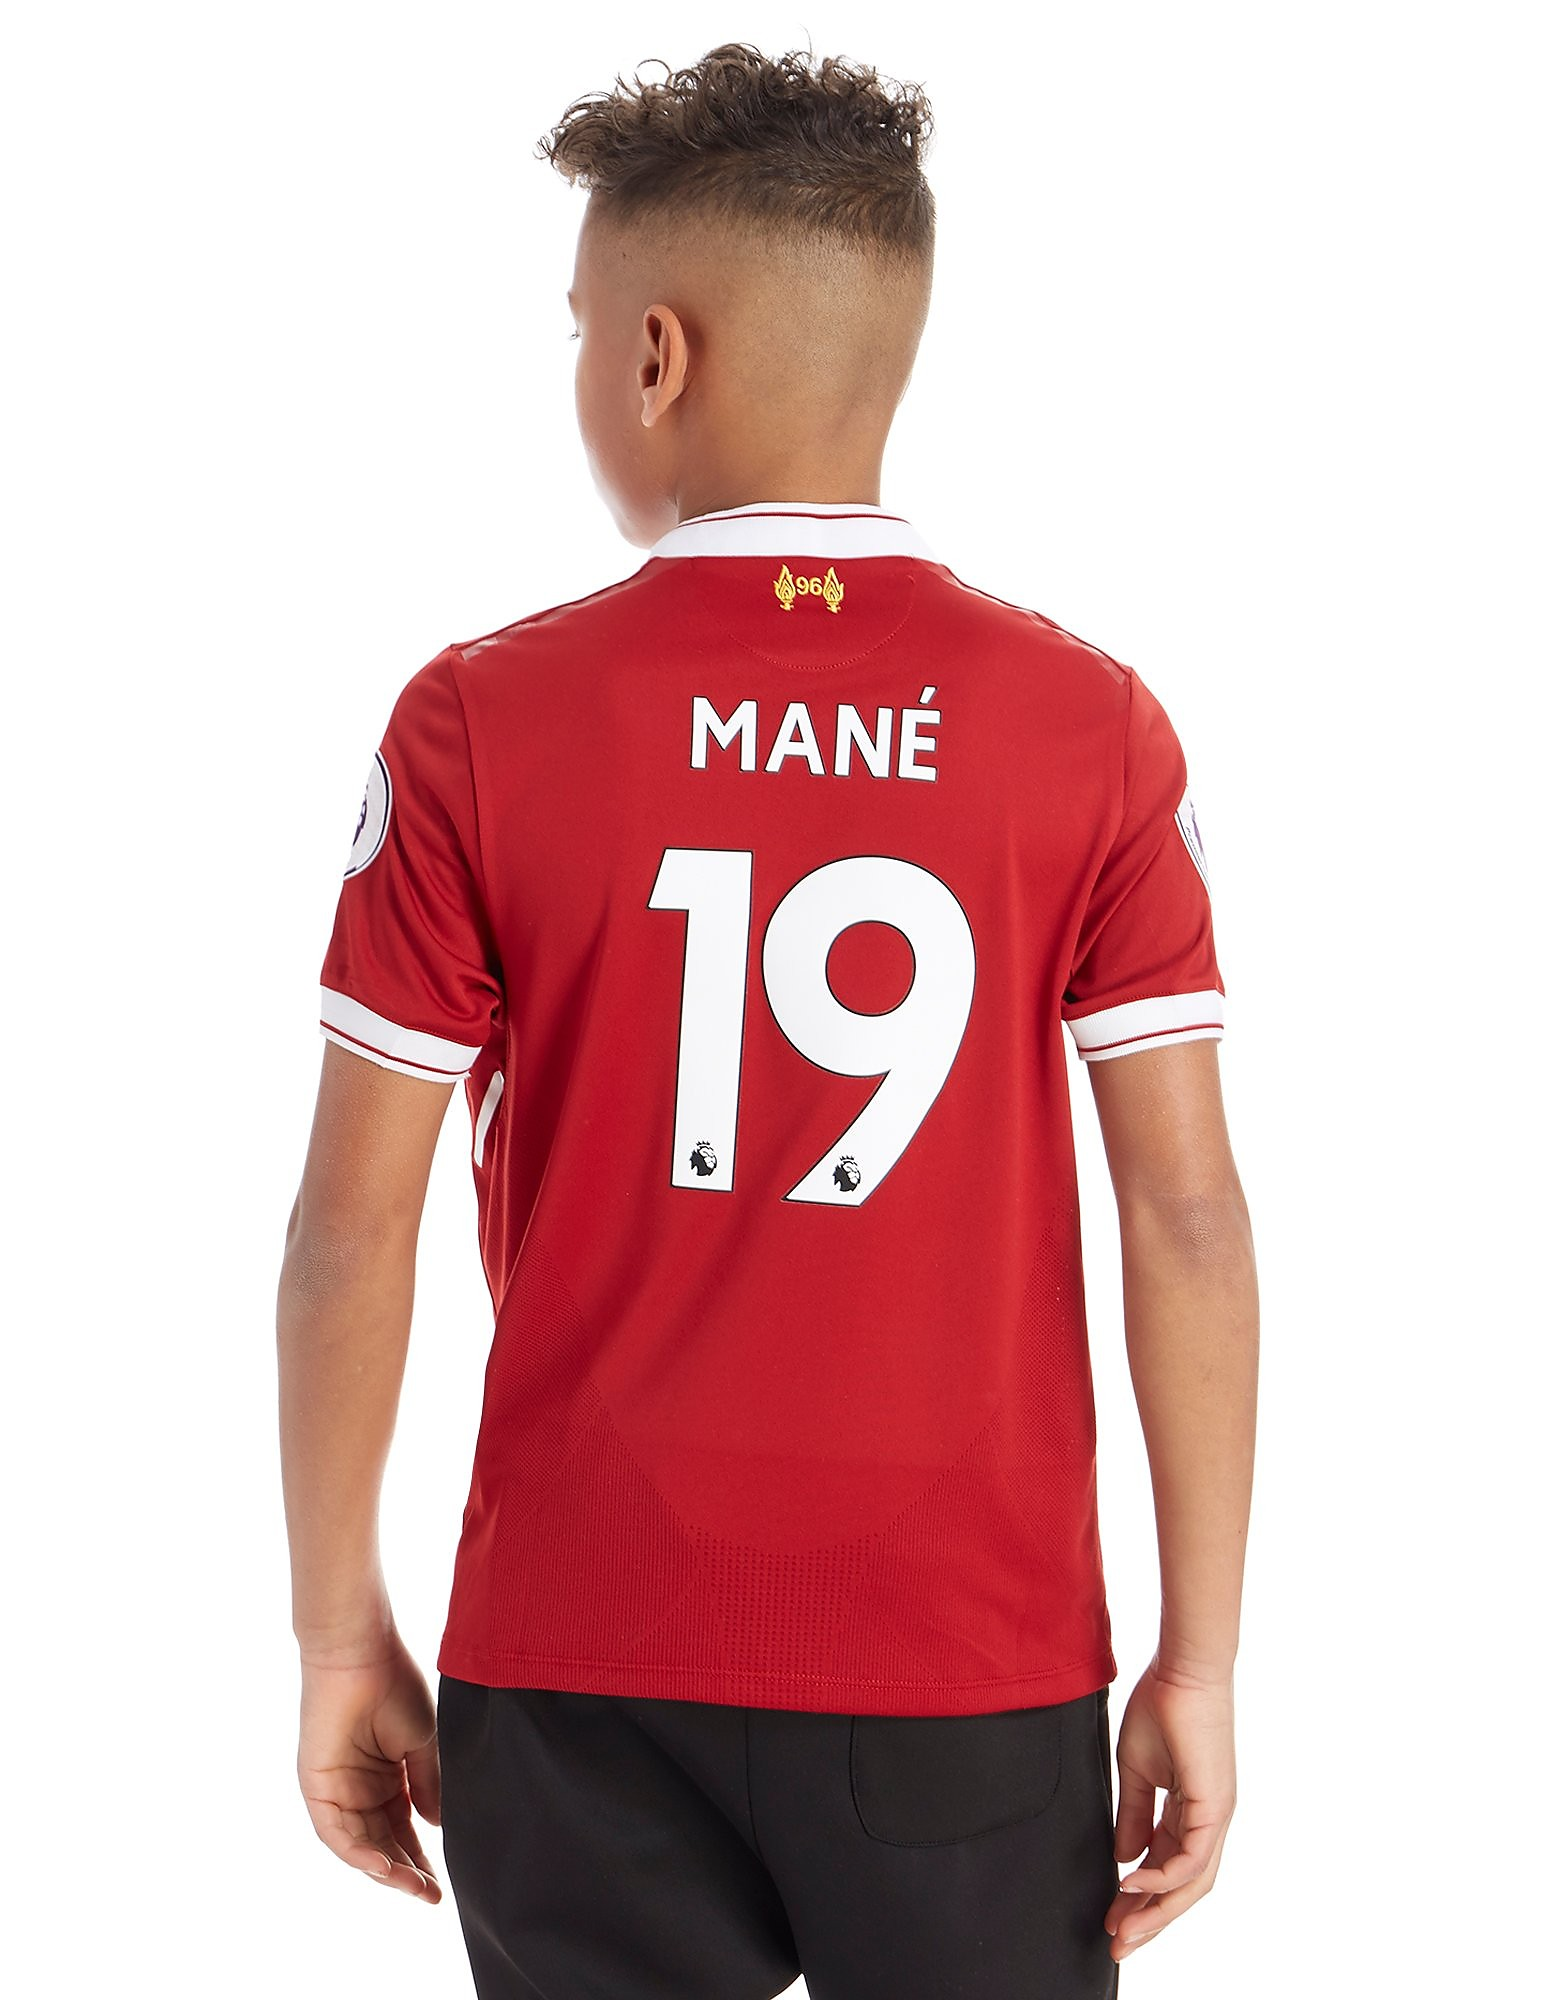 New Balance Liverpool FC 2017 Mane #19 Home Shirt Junior